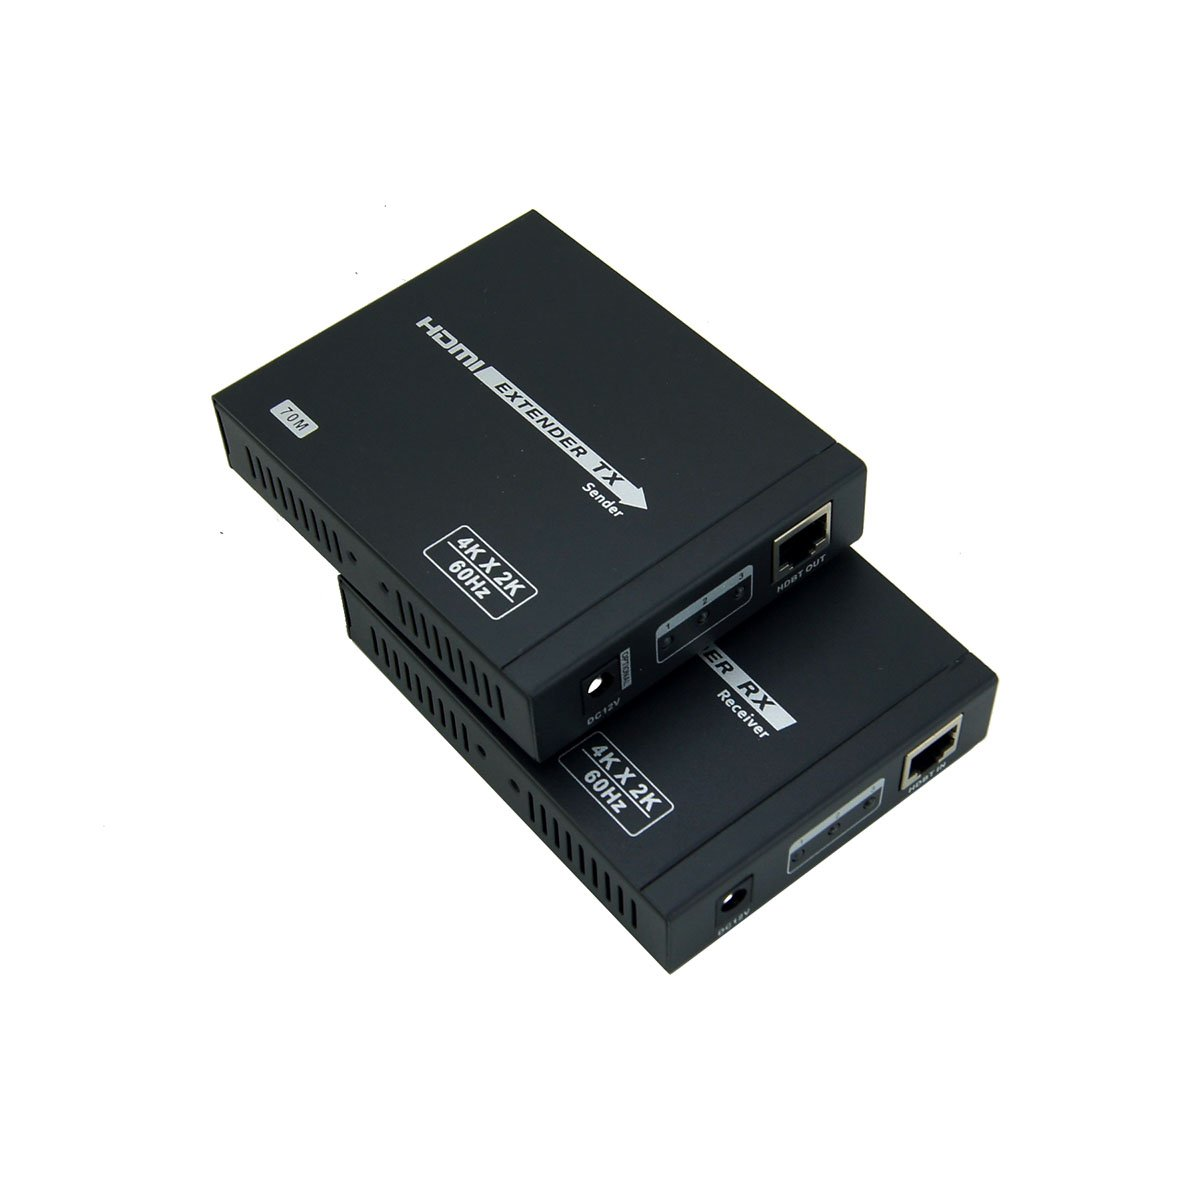 E-SDS HDBaseT2.0 HDMI Extender 4K@60HZ 4:4:4 Chroma, HDbaseT Extender over CAT6/6A/7 Cable up to 230ft Supports HDMI 2.0 18Gbps, HDR, HDCP 2.2, RS232, Bi-directional IR by E-SDS (Image #4)